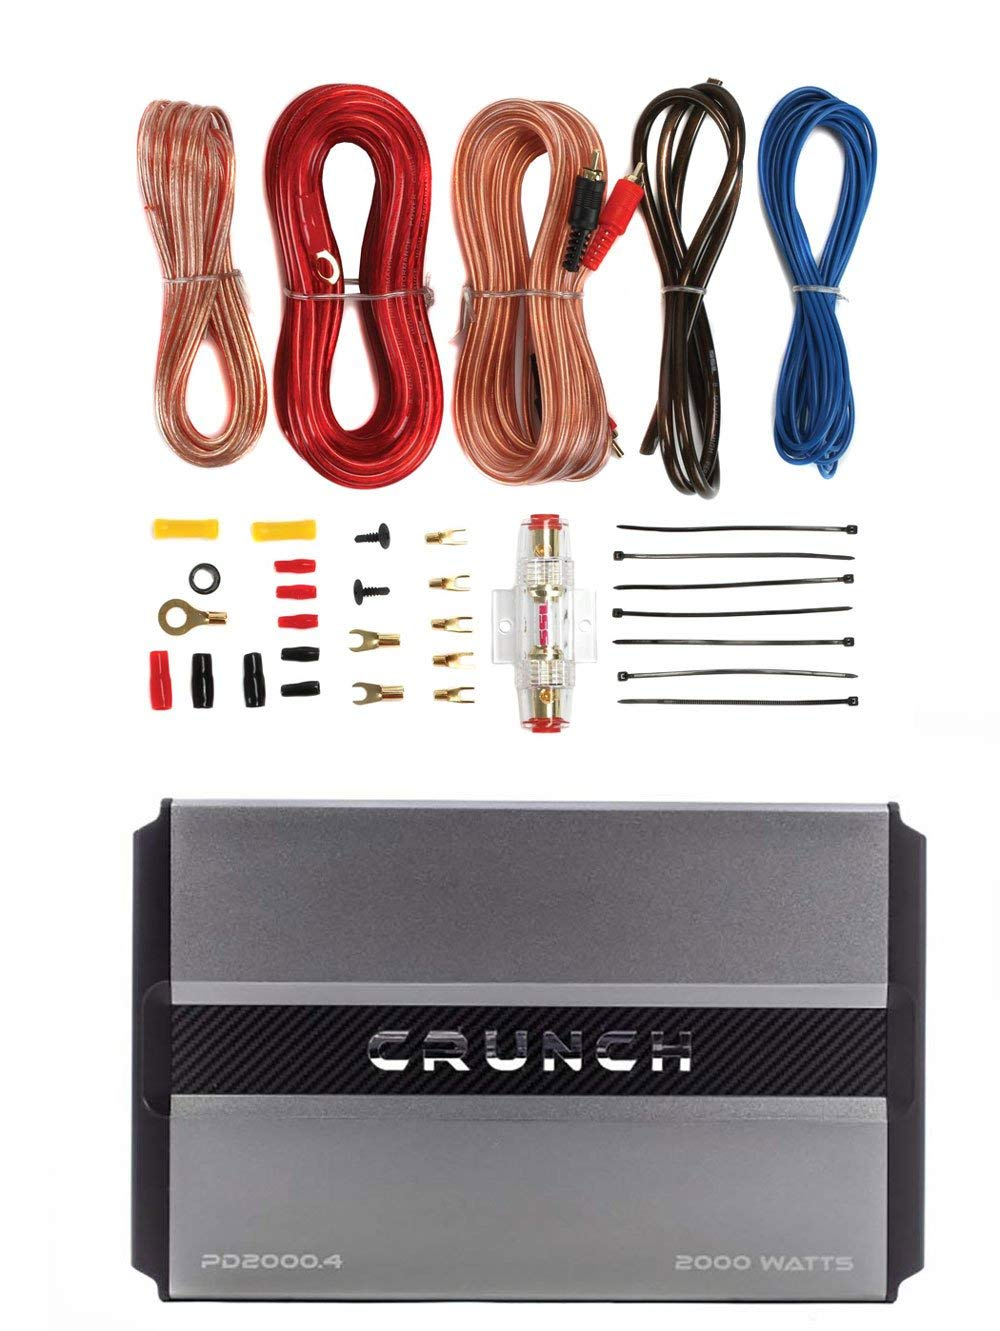 hight resolution of cheap high power 4 channel amp find high power 4 channel amp deals crunch a four channel amp wiring on power acoustik amp wiring kit